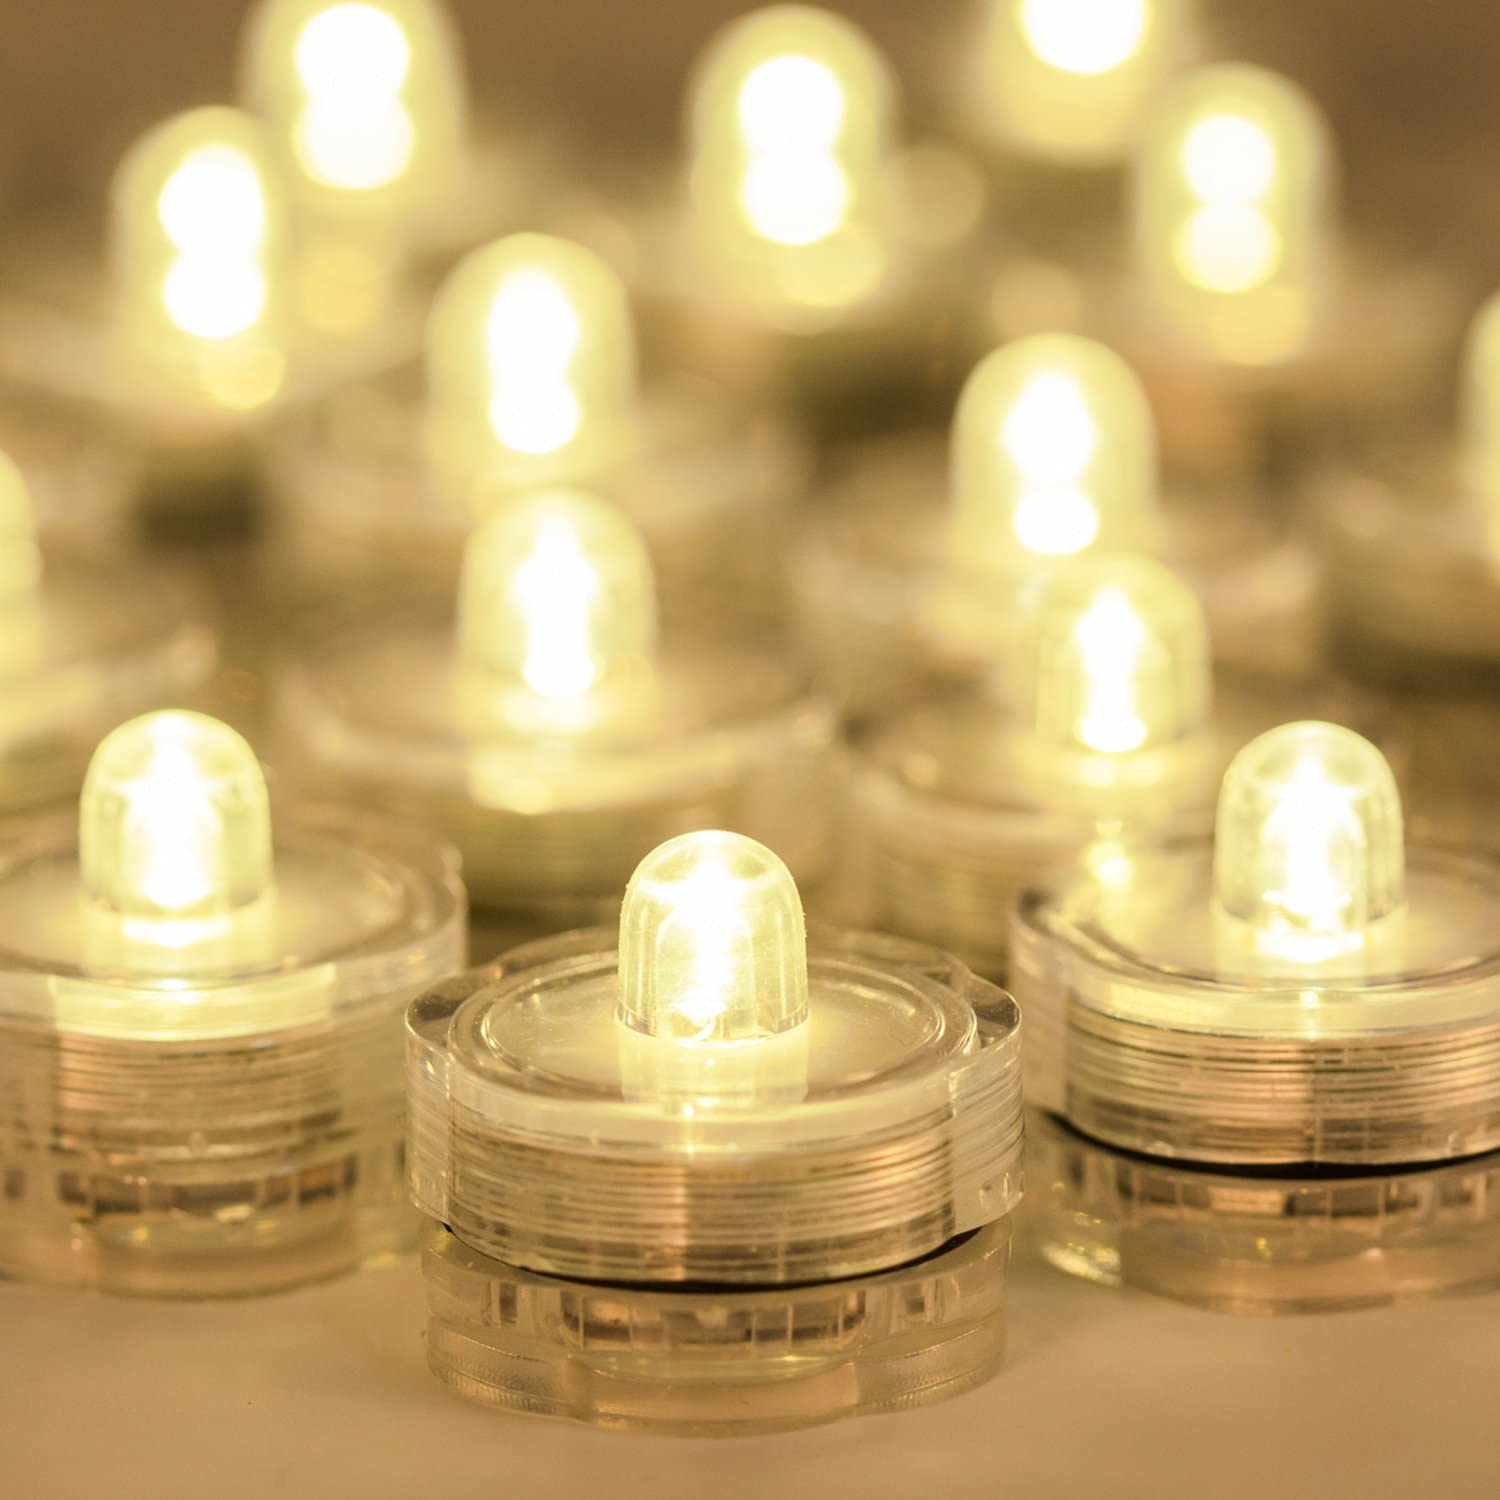 Warm White Waterproof Wedding Underwater LED Tea Lights Candles for Centerpieces//Party//Christmas Set of 24 Submersible LED Lights